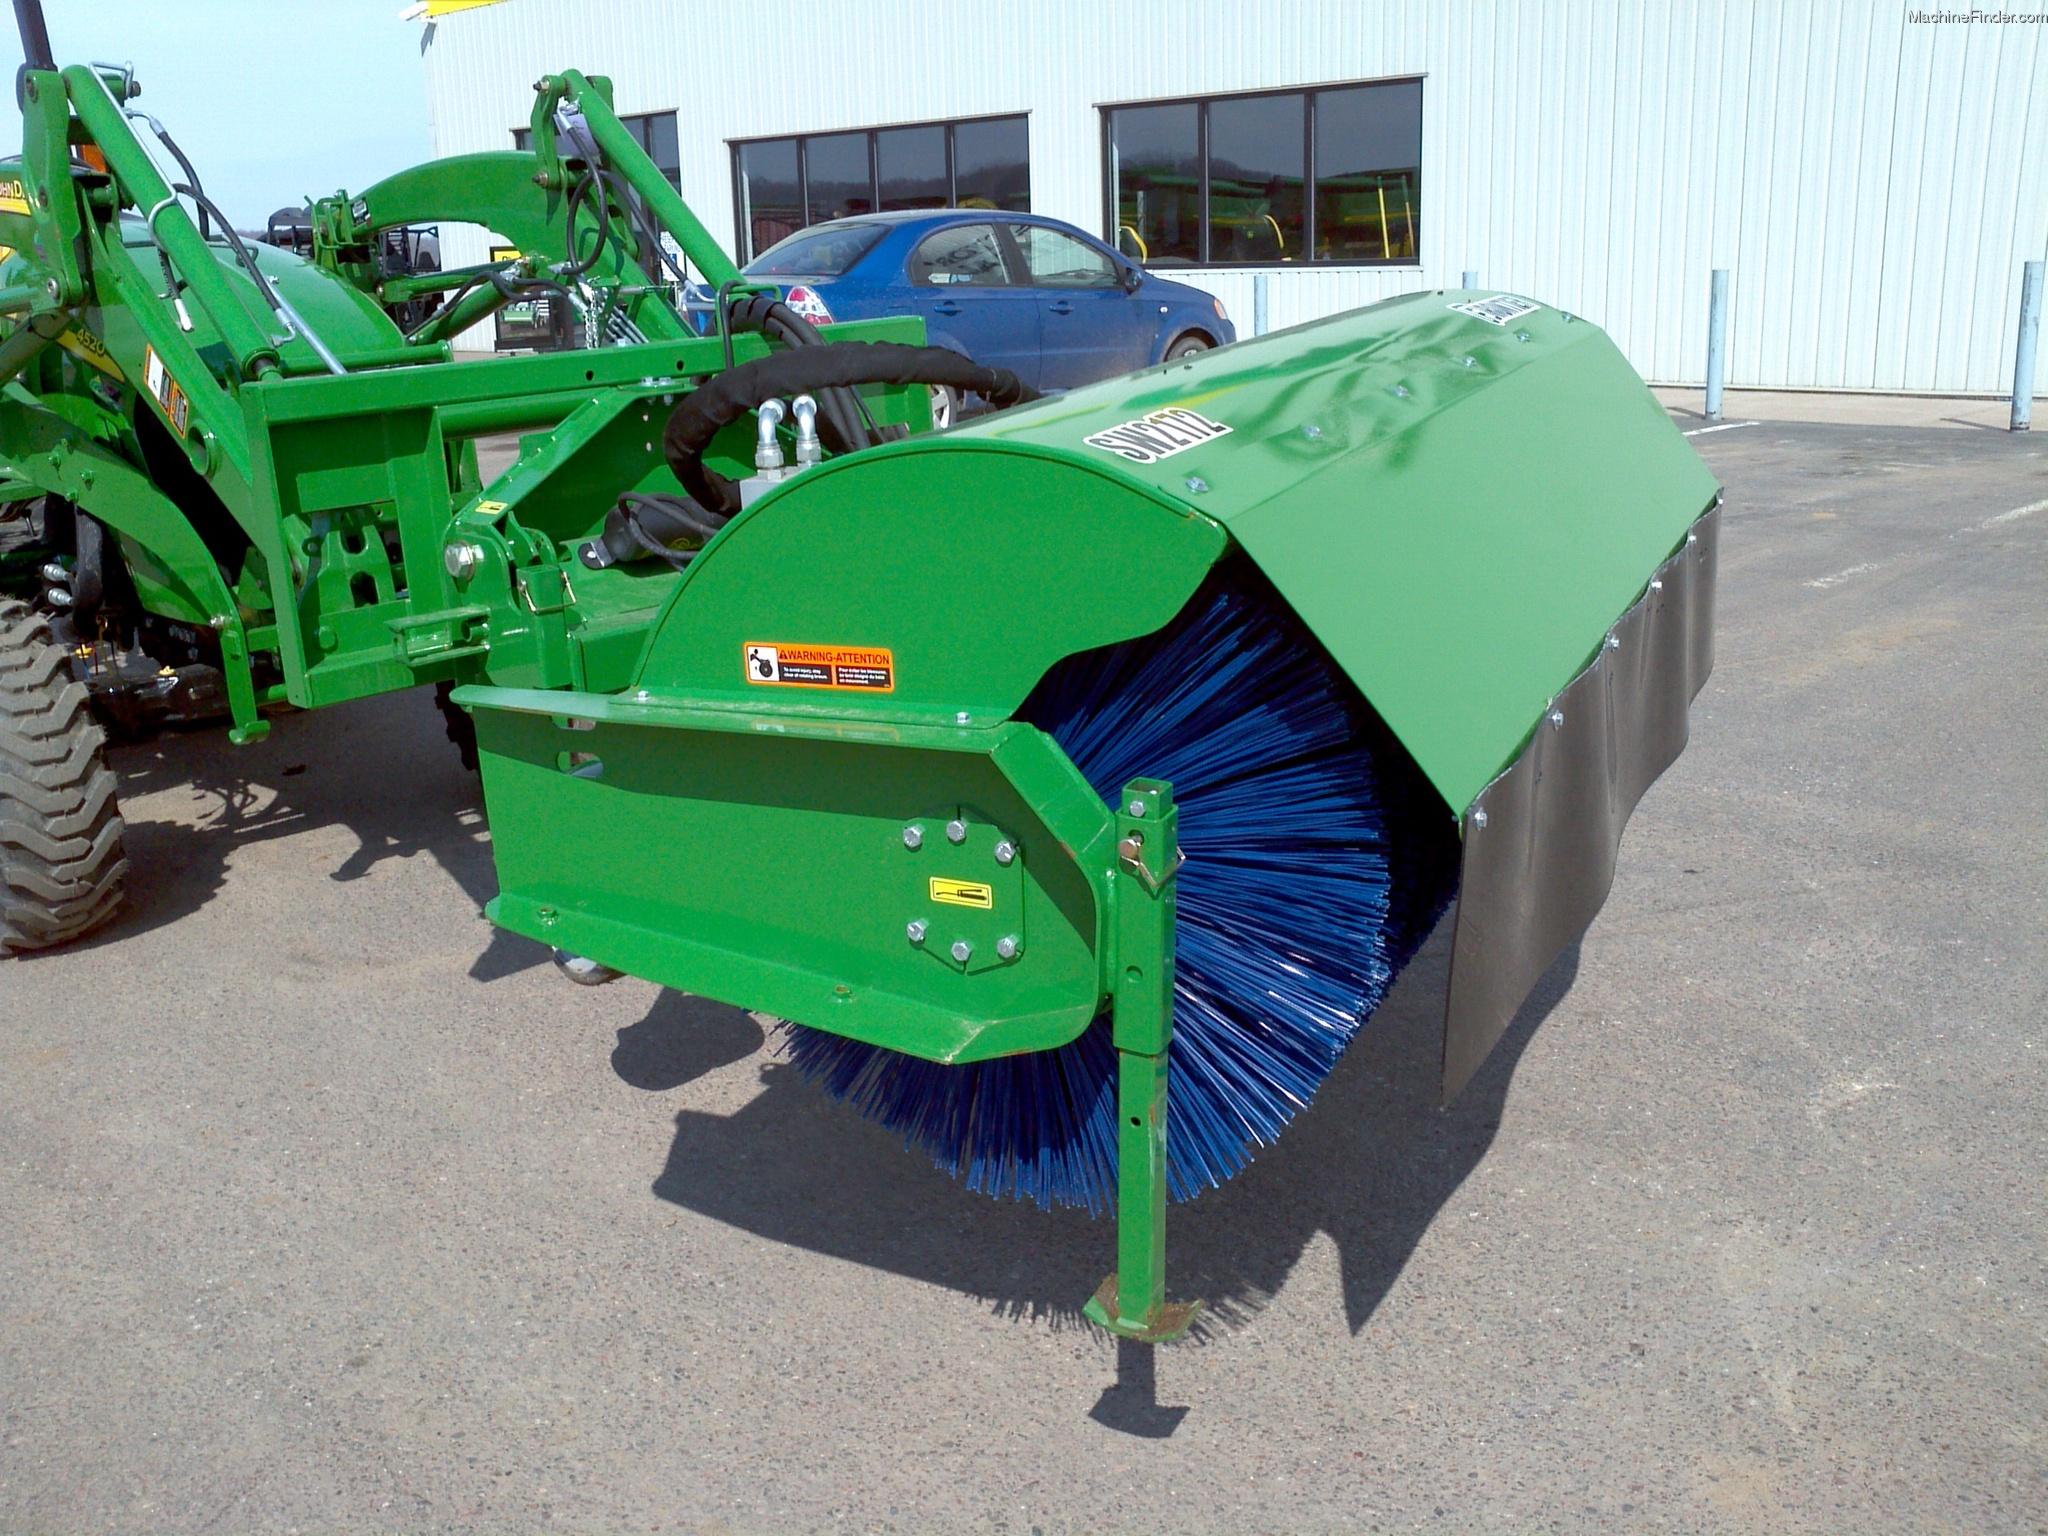 2013 Frontier sw2172 Broom / Sweeper - John Deere MachineFinder